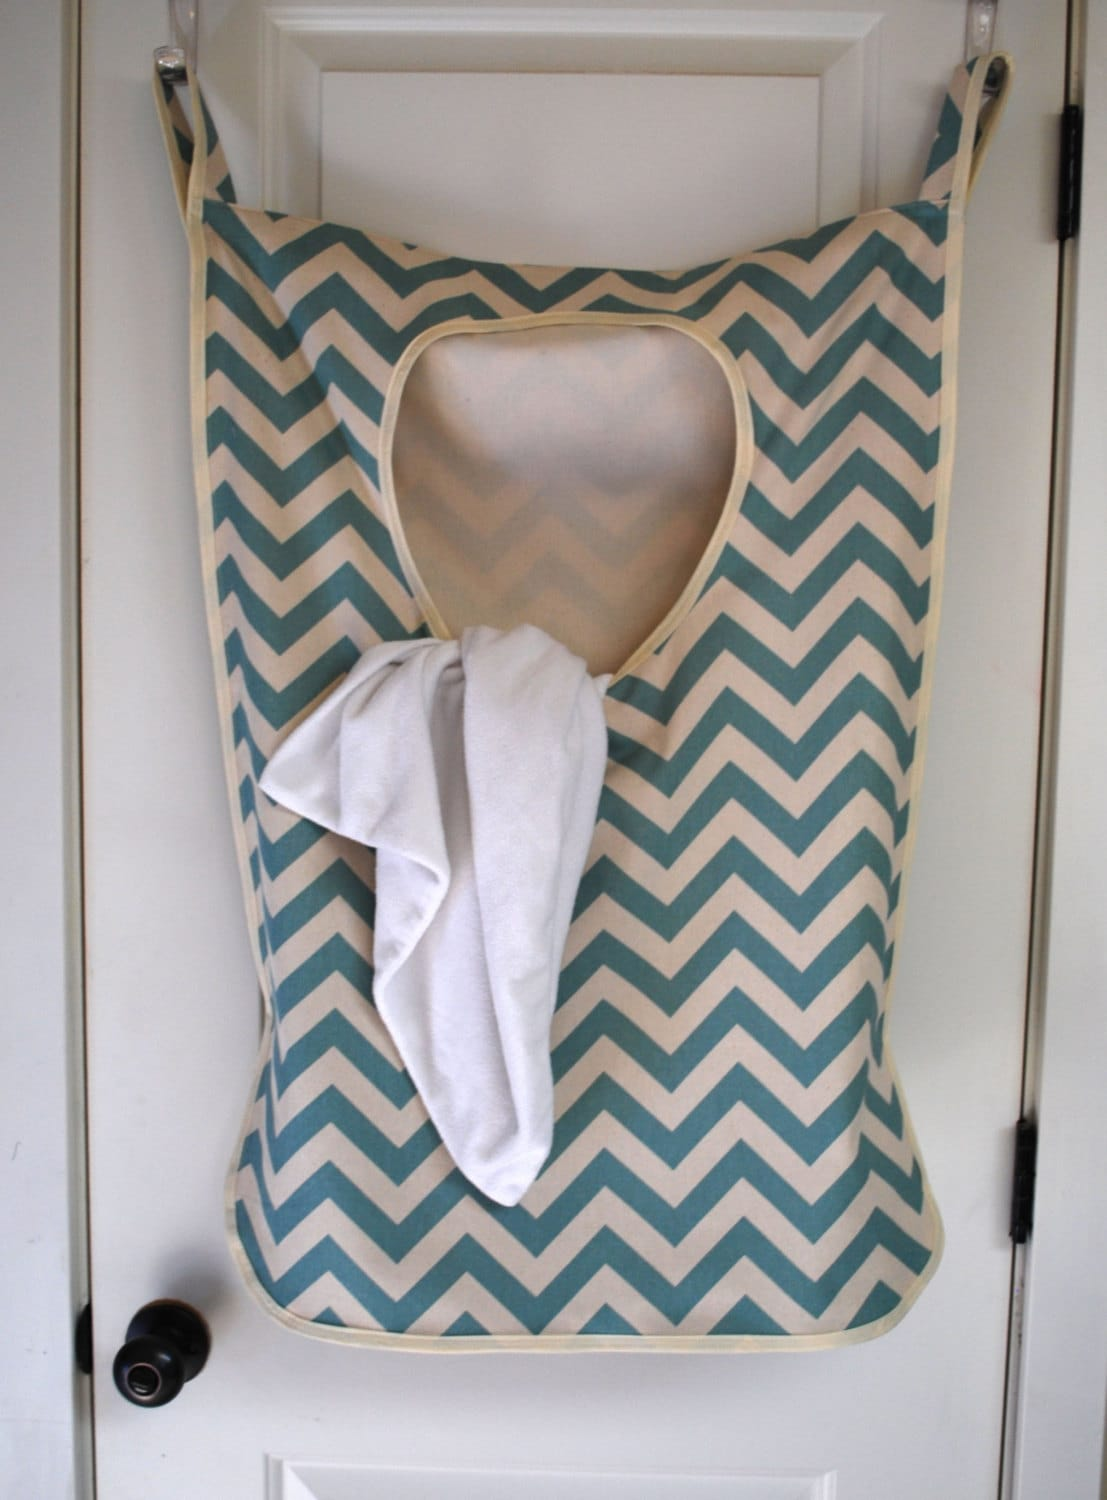 laundry bag hamper hangingblue chevron fabric. Black Bedroom Furniture Sets. Home Design Ideas